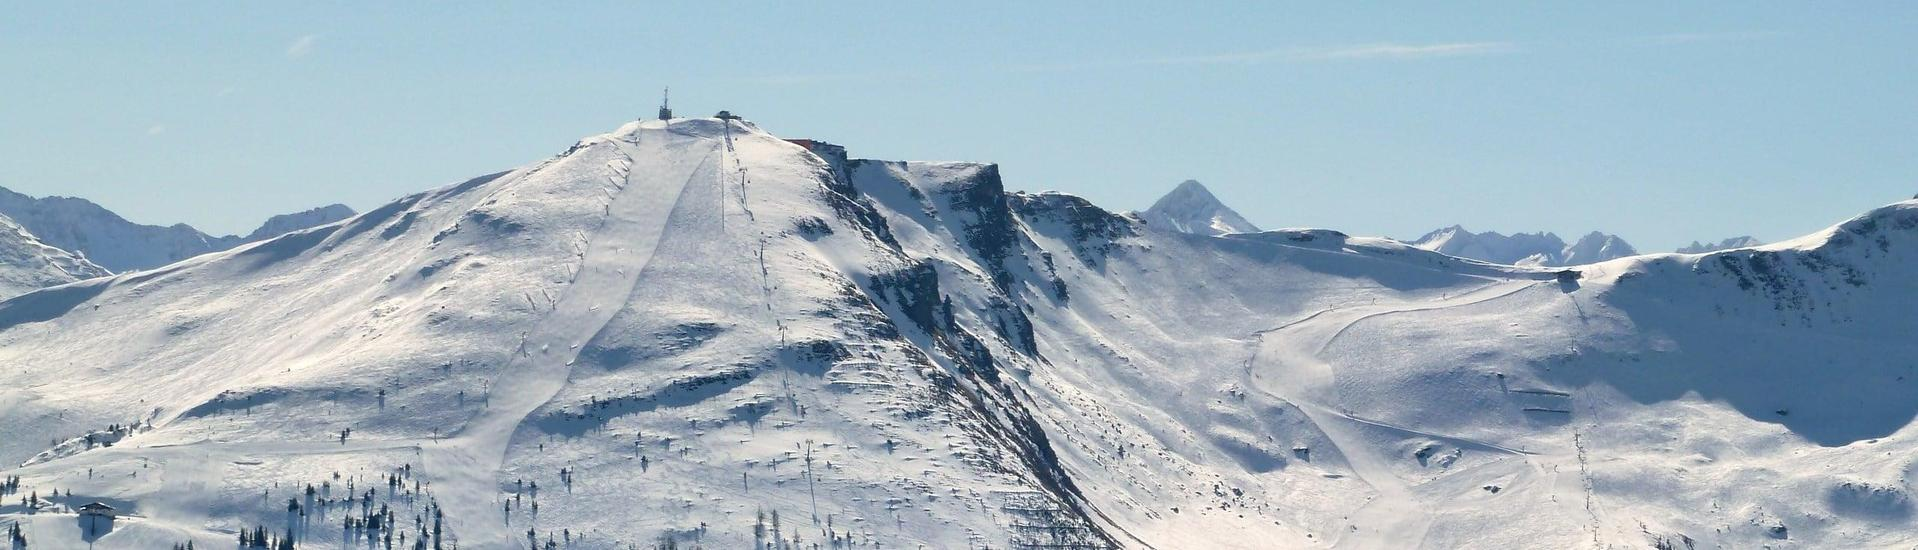 View over the sunny mountain landscape while learning to ski with the ski schools in Bad Gastein.